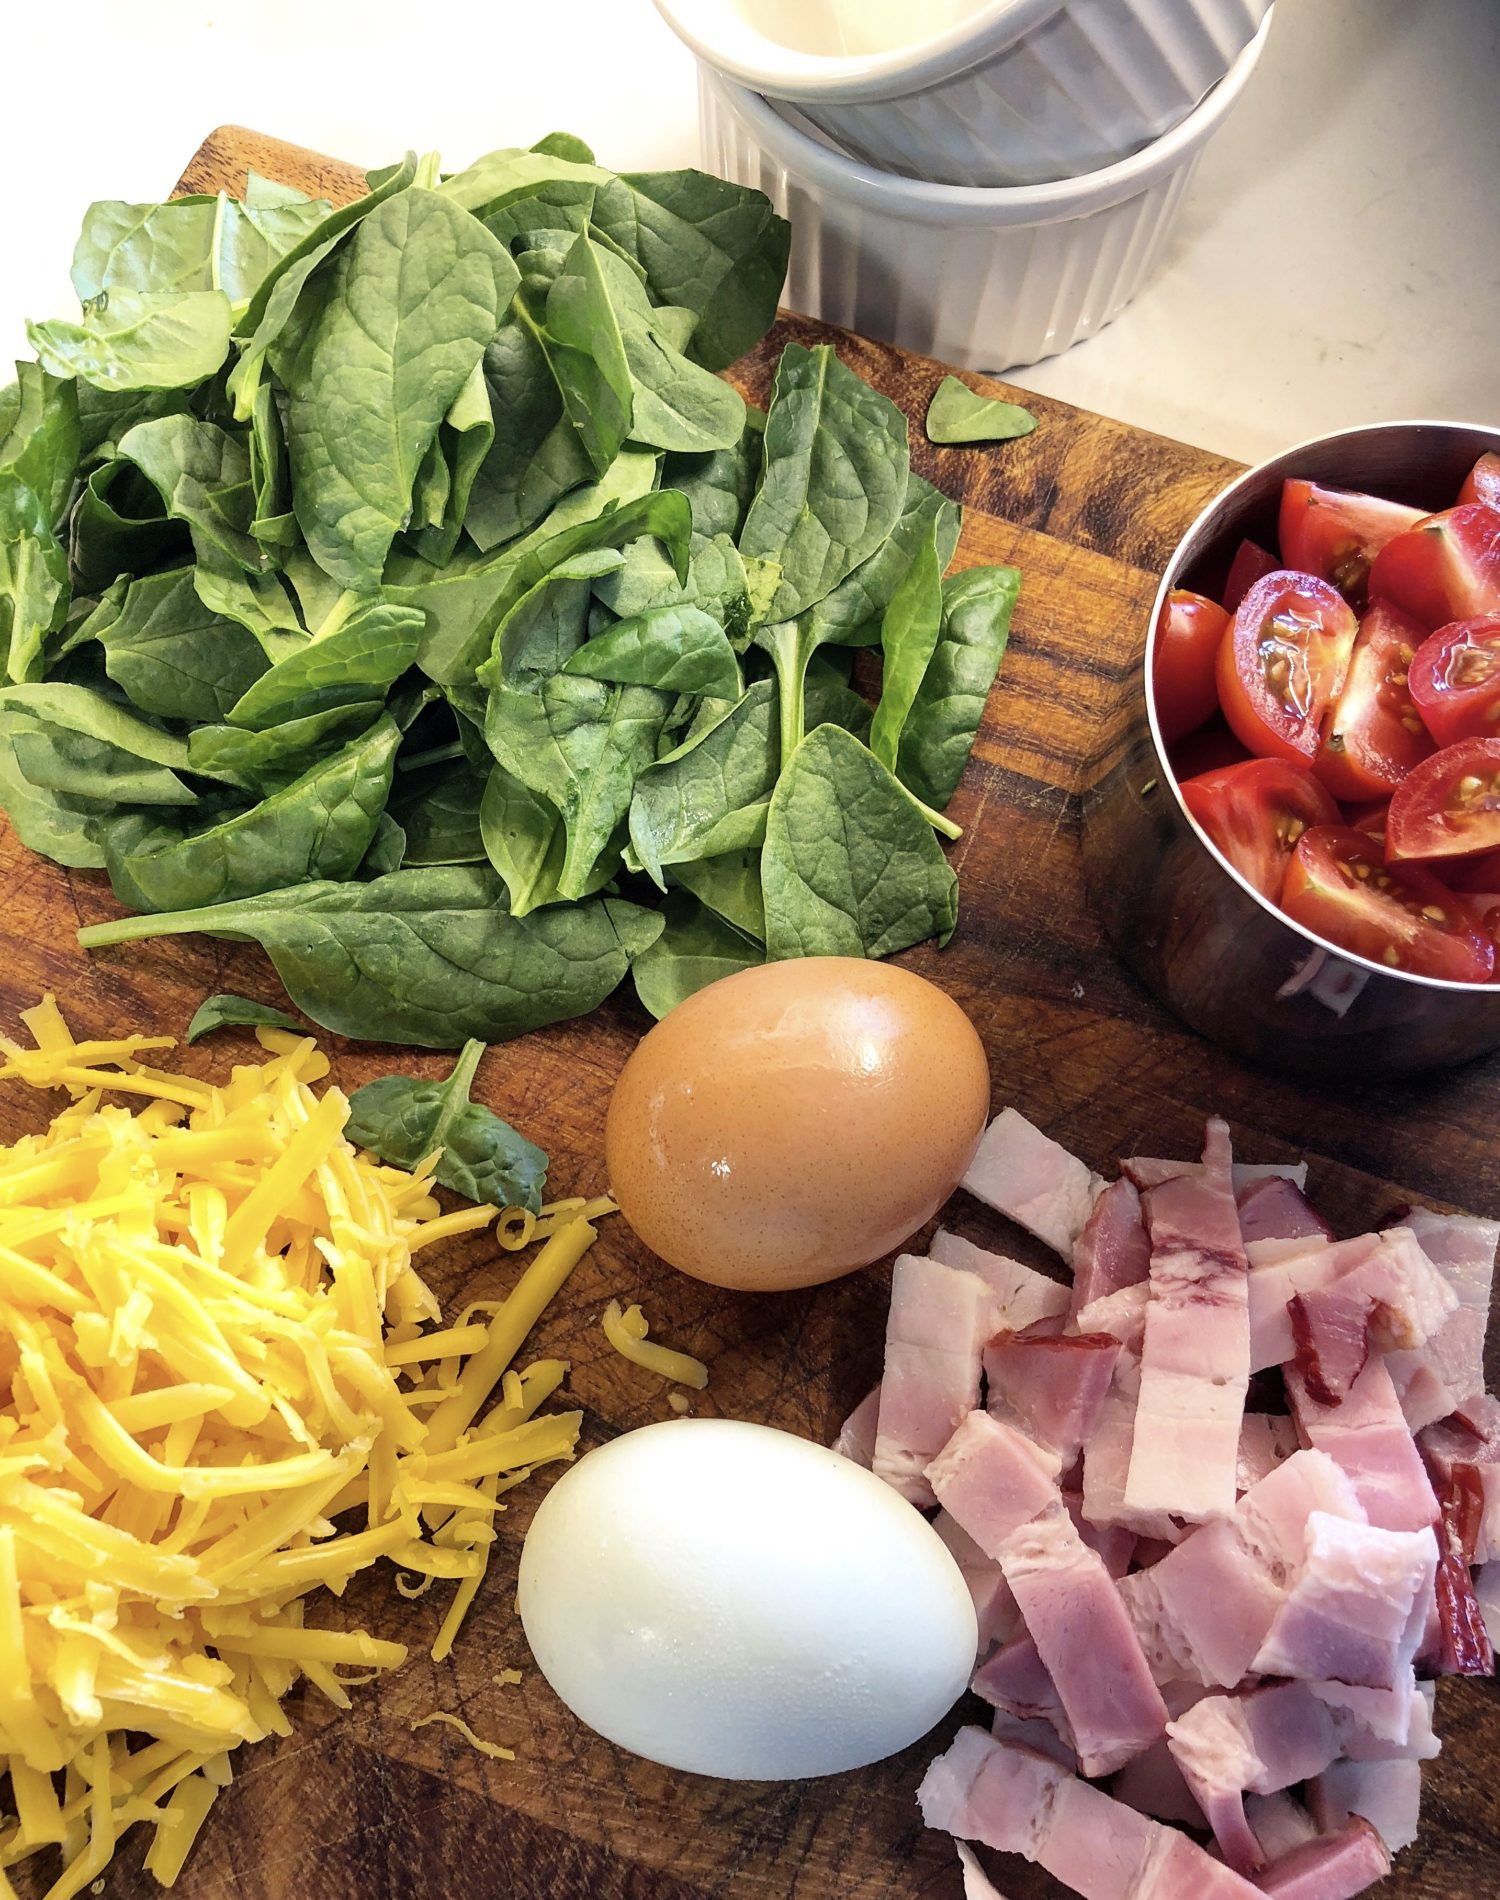 Baby Spinach, cherry tomatoes, grated cheddar cheese, eggs and double smoked bacon for Baked Eggs